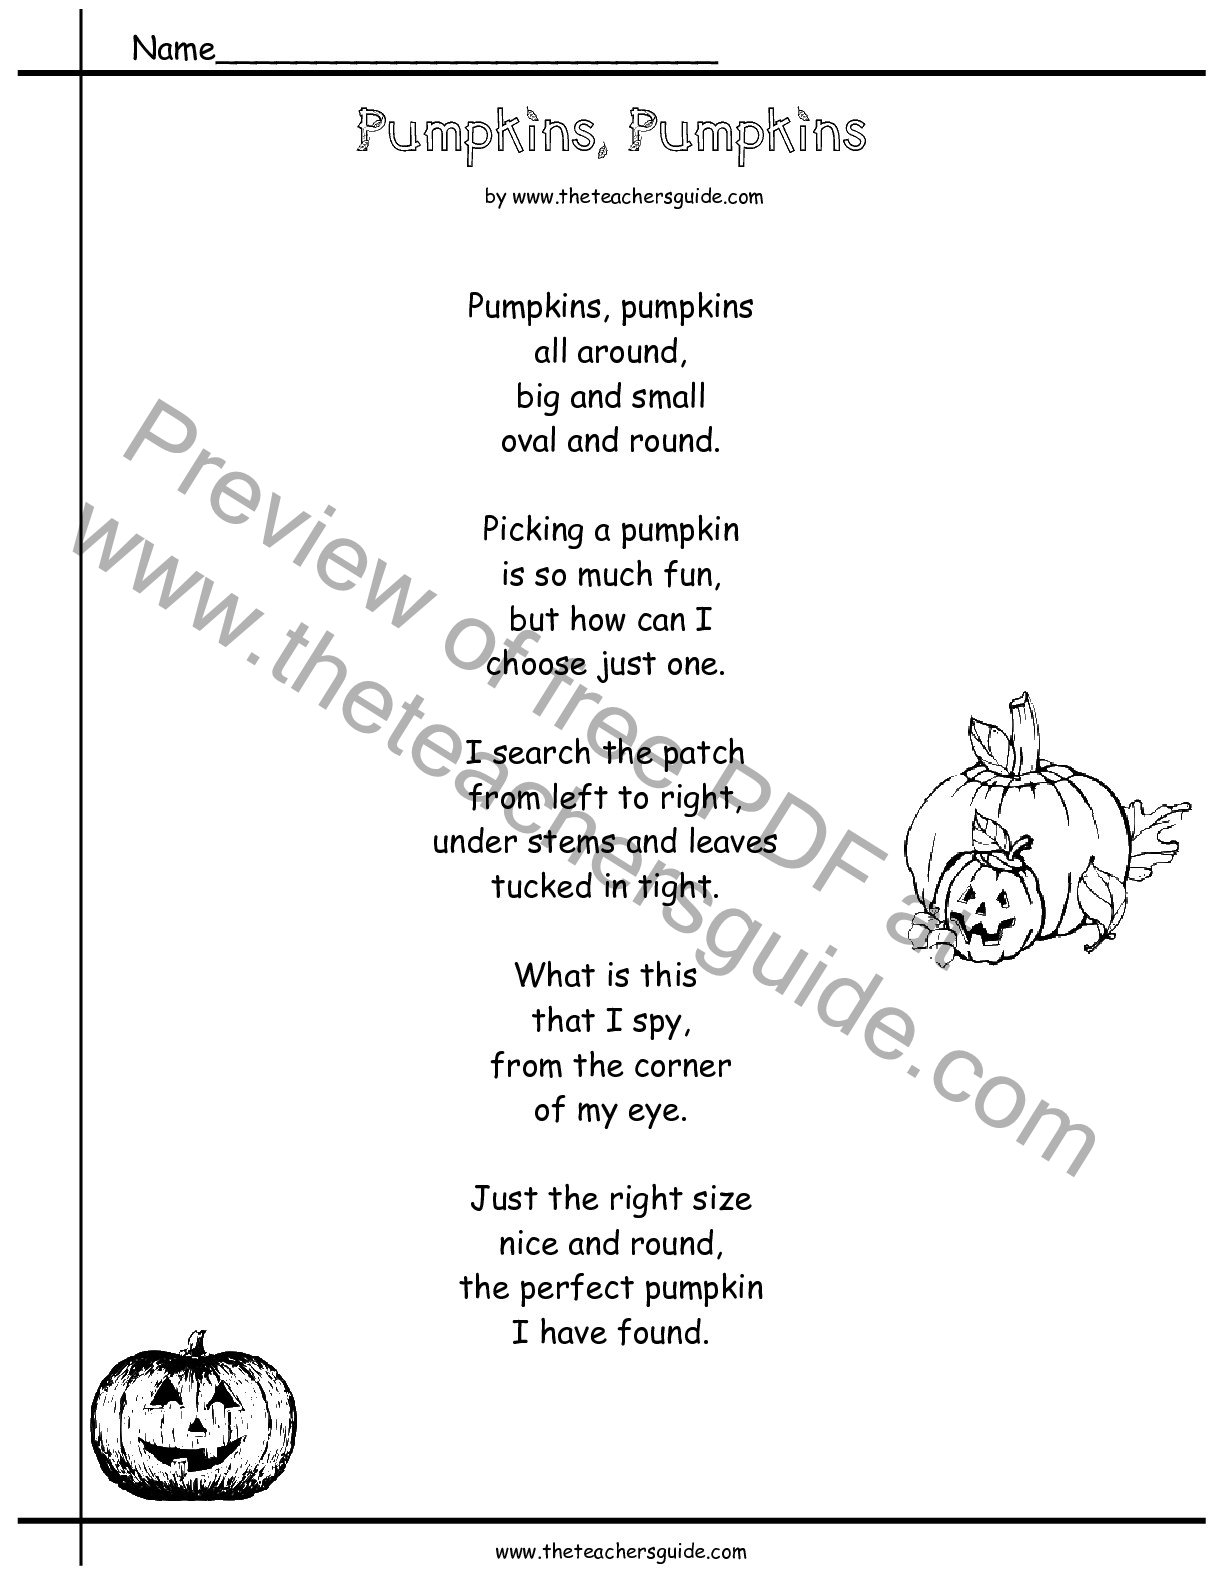 Worksheets Life Cycle Of A Pumpkin Worksheet pumpkins lesson plans themes printouts crafts and clipart pumpkin patch poem